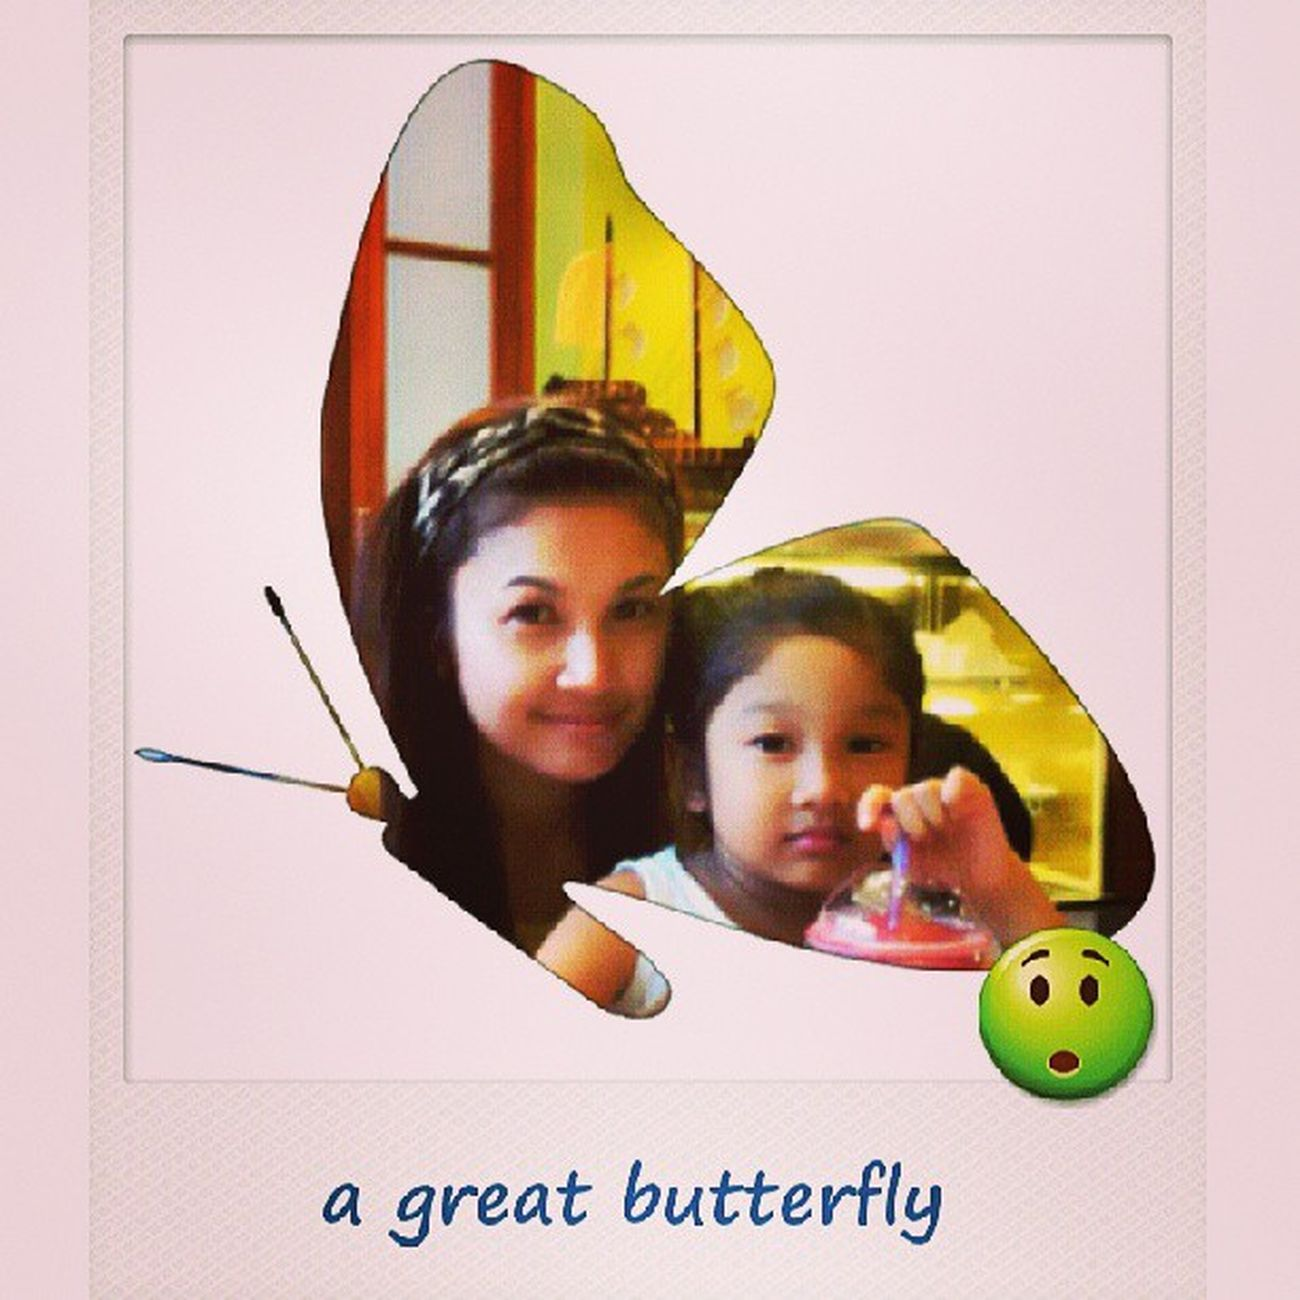 A great butterfly...